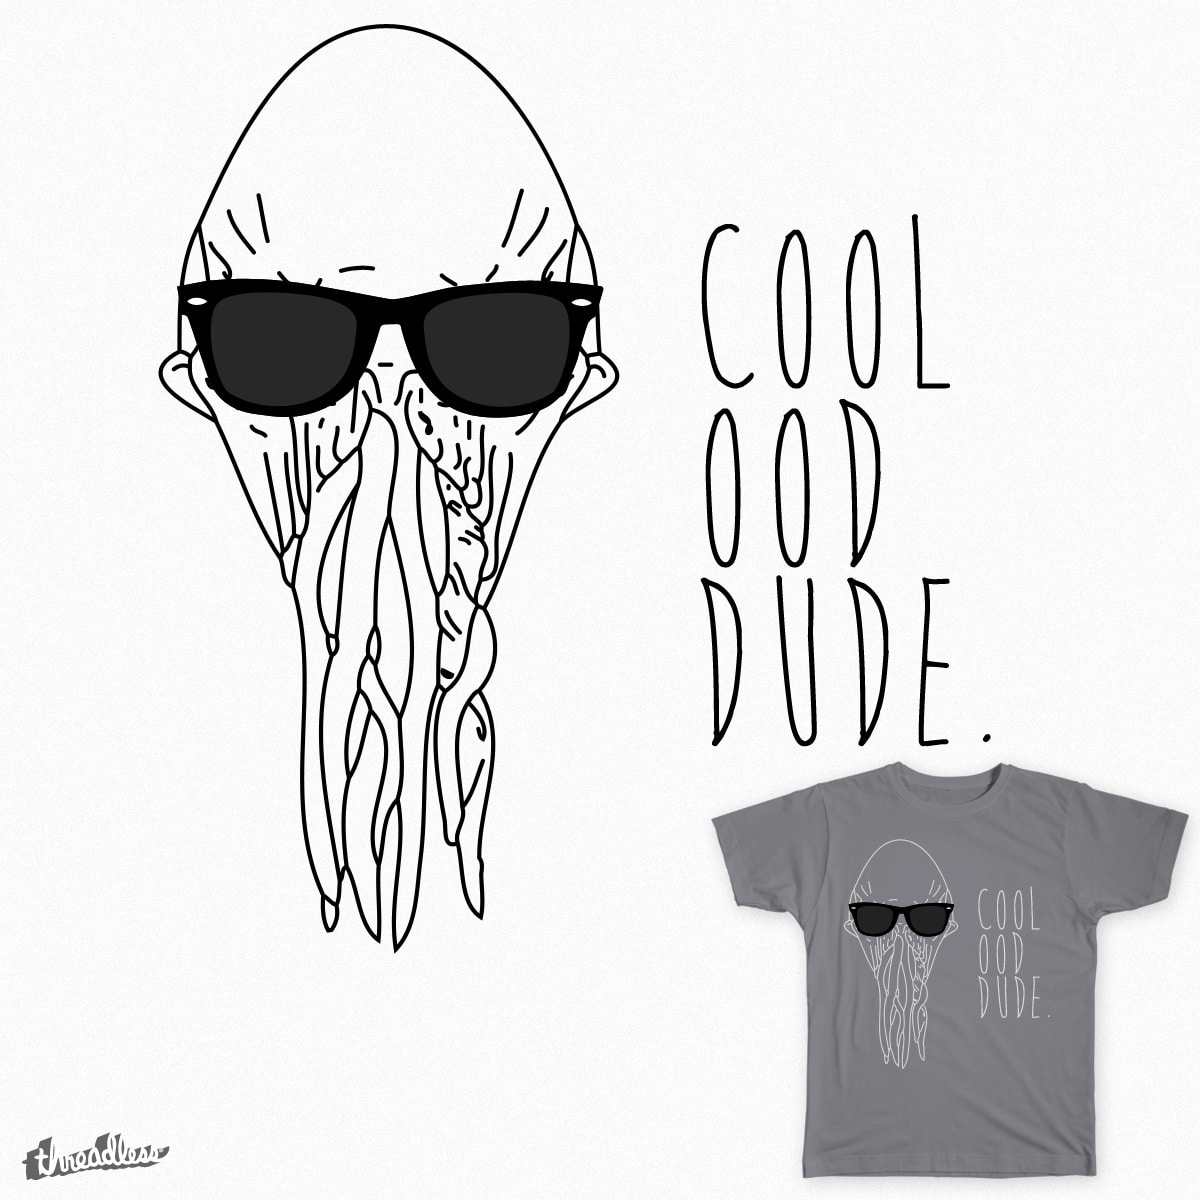 Cool Ood Dude. by waynejay on Threadless